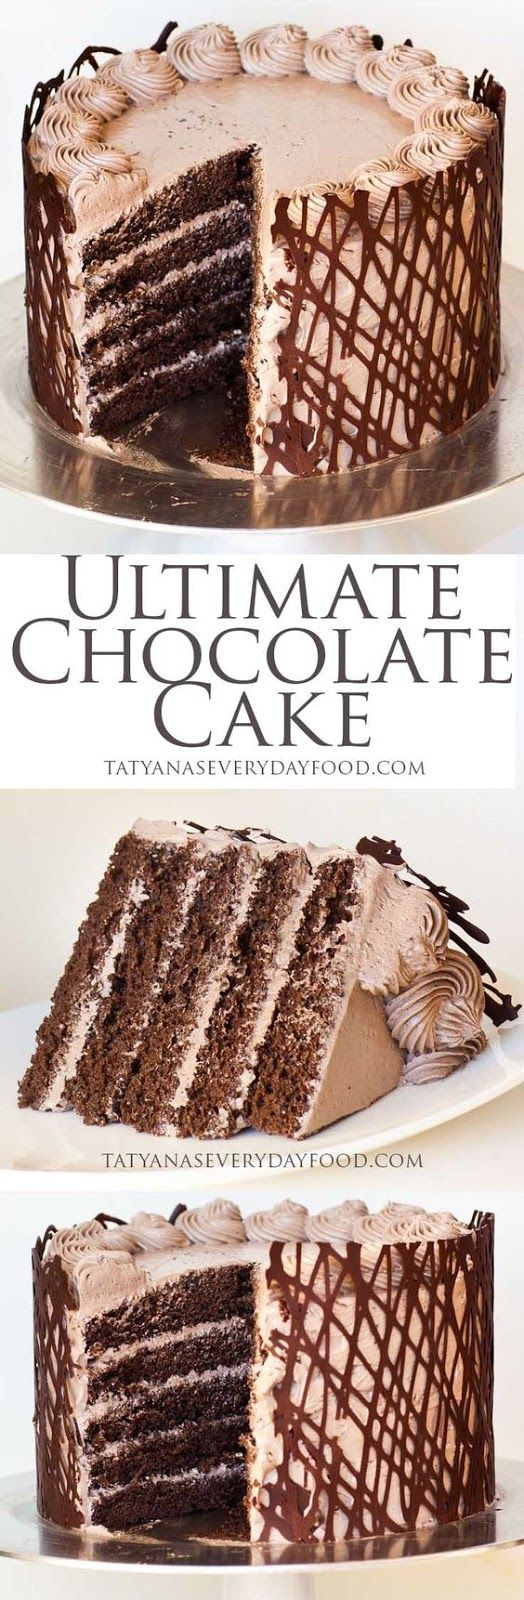 Ultimate Chocolate Cake | Food And Cake Recipes